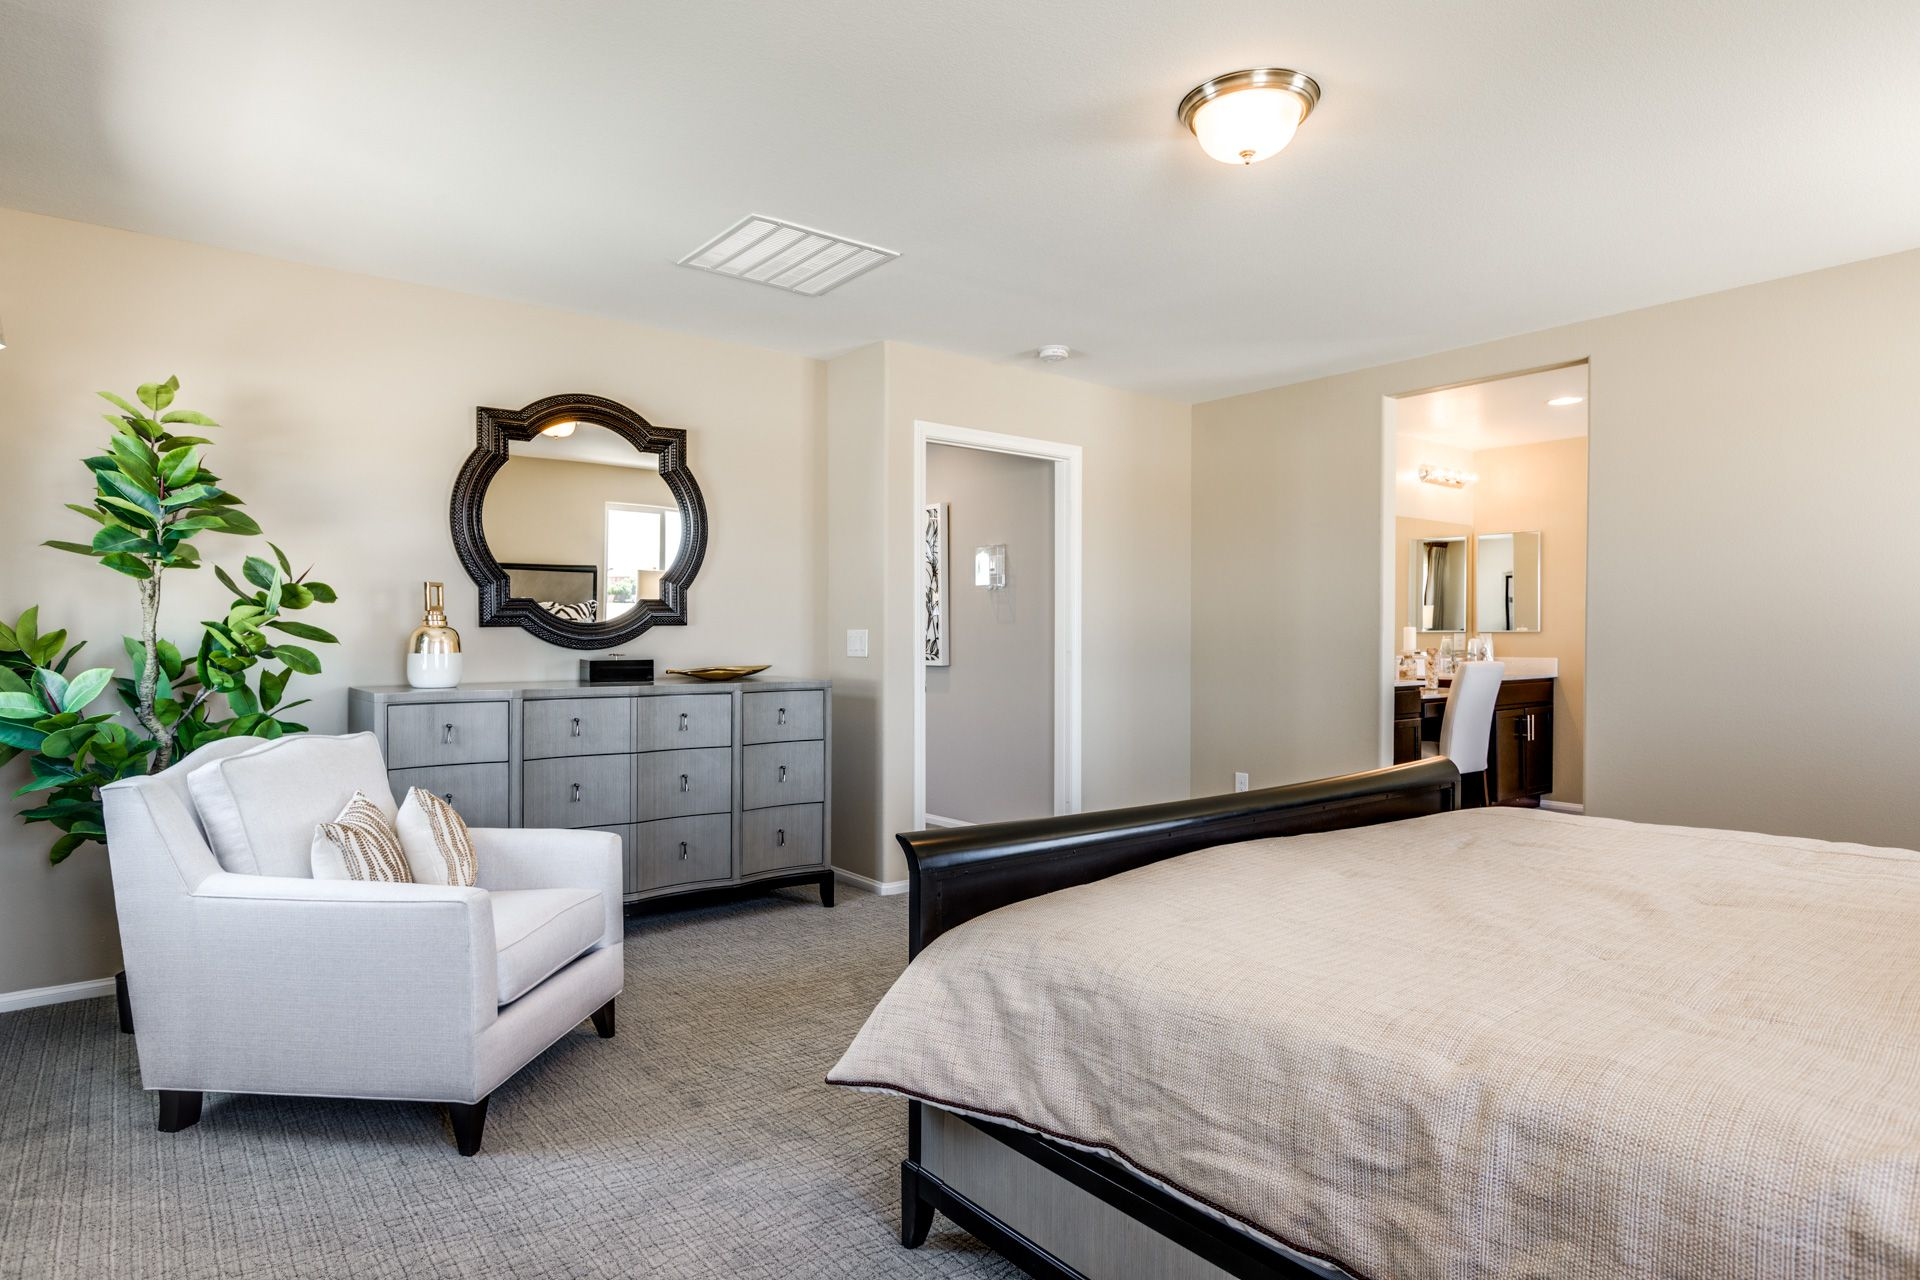 Bedroom featured in the Residence 2275 By Harmony Homes - Las Vegas in Las Vegas, NV